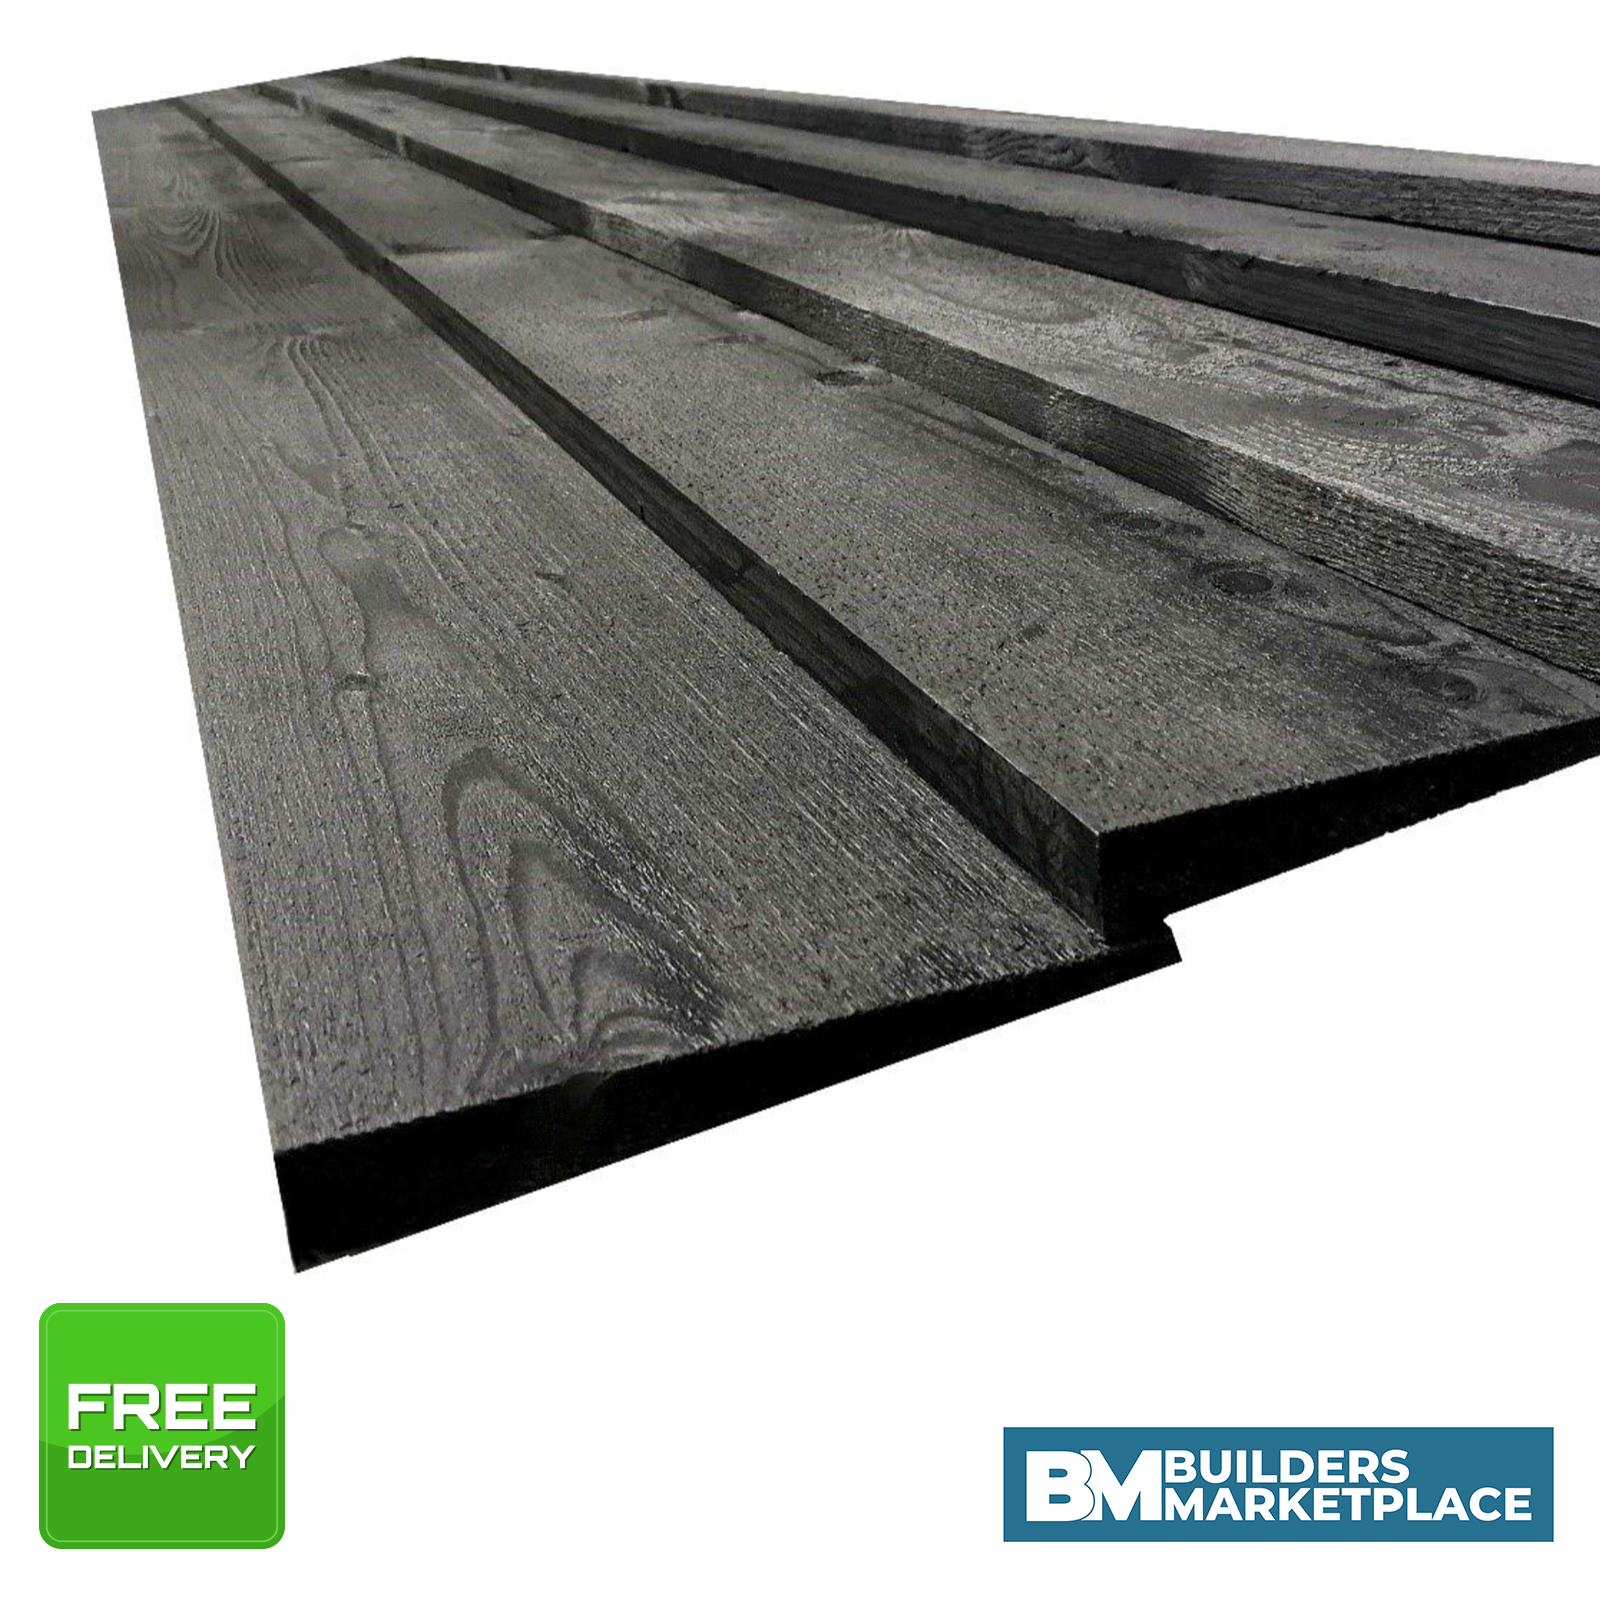 Picture of: Black Painted Feather Edge Boards Fence Panels Cladding Treated Timber Fencing Ebay